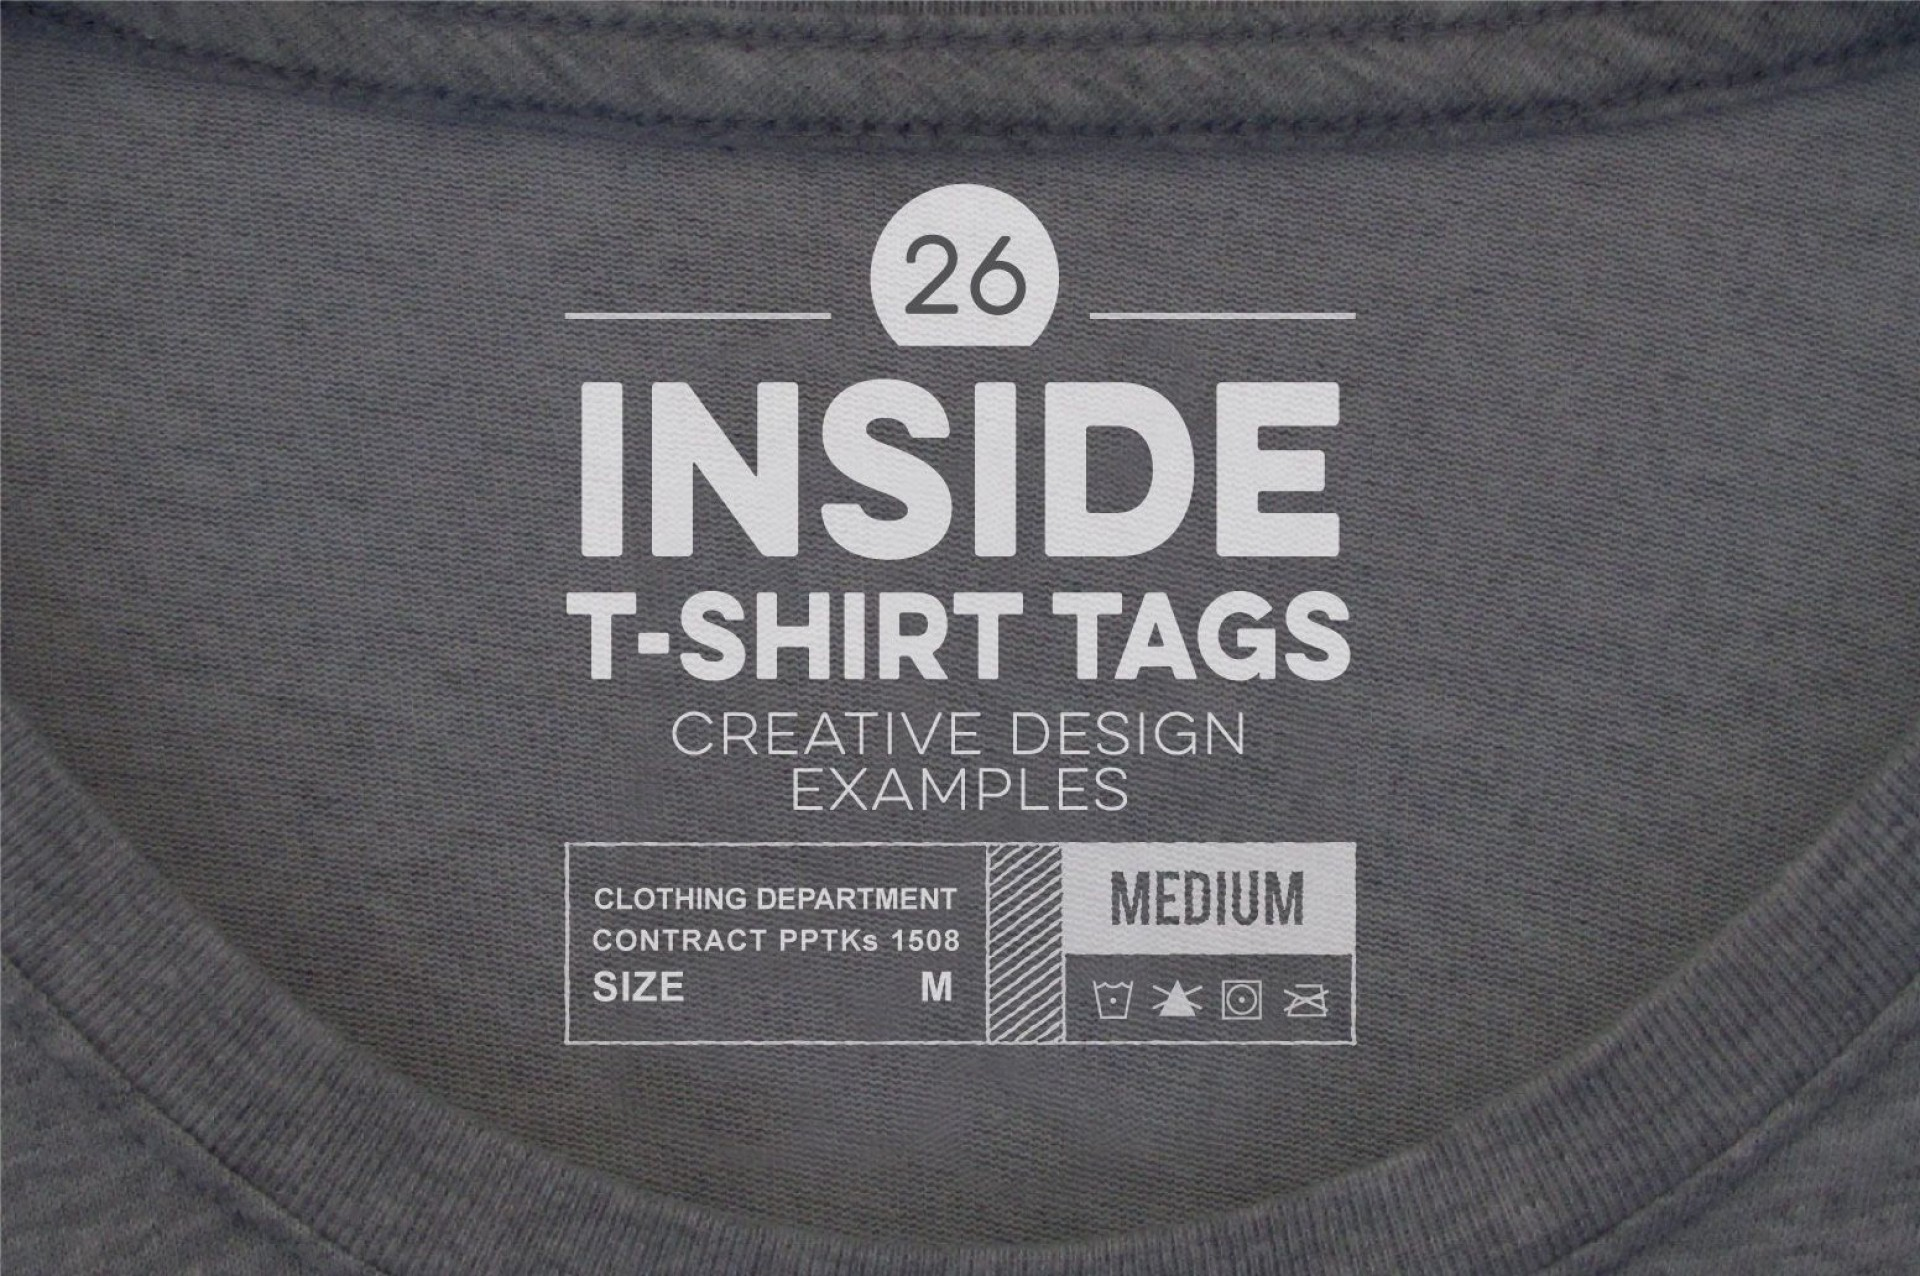 005 Unforgettable T Shirt Tag Template Highest Clarity  Neck Label1920